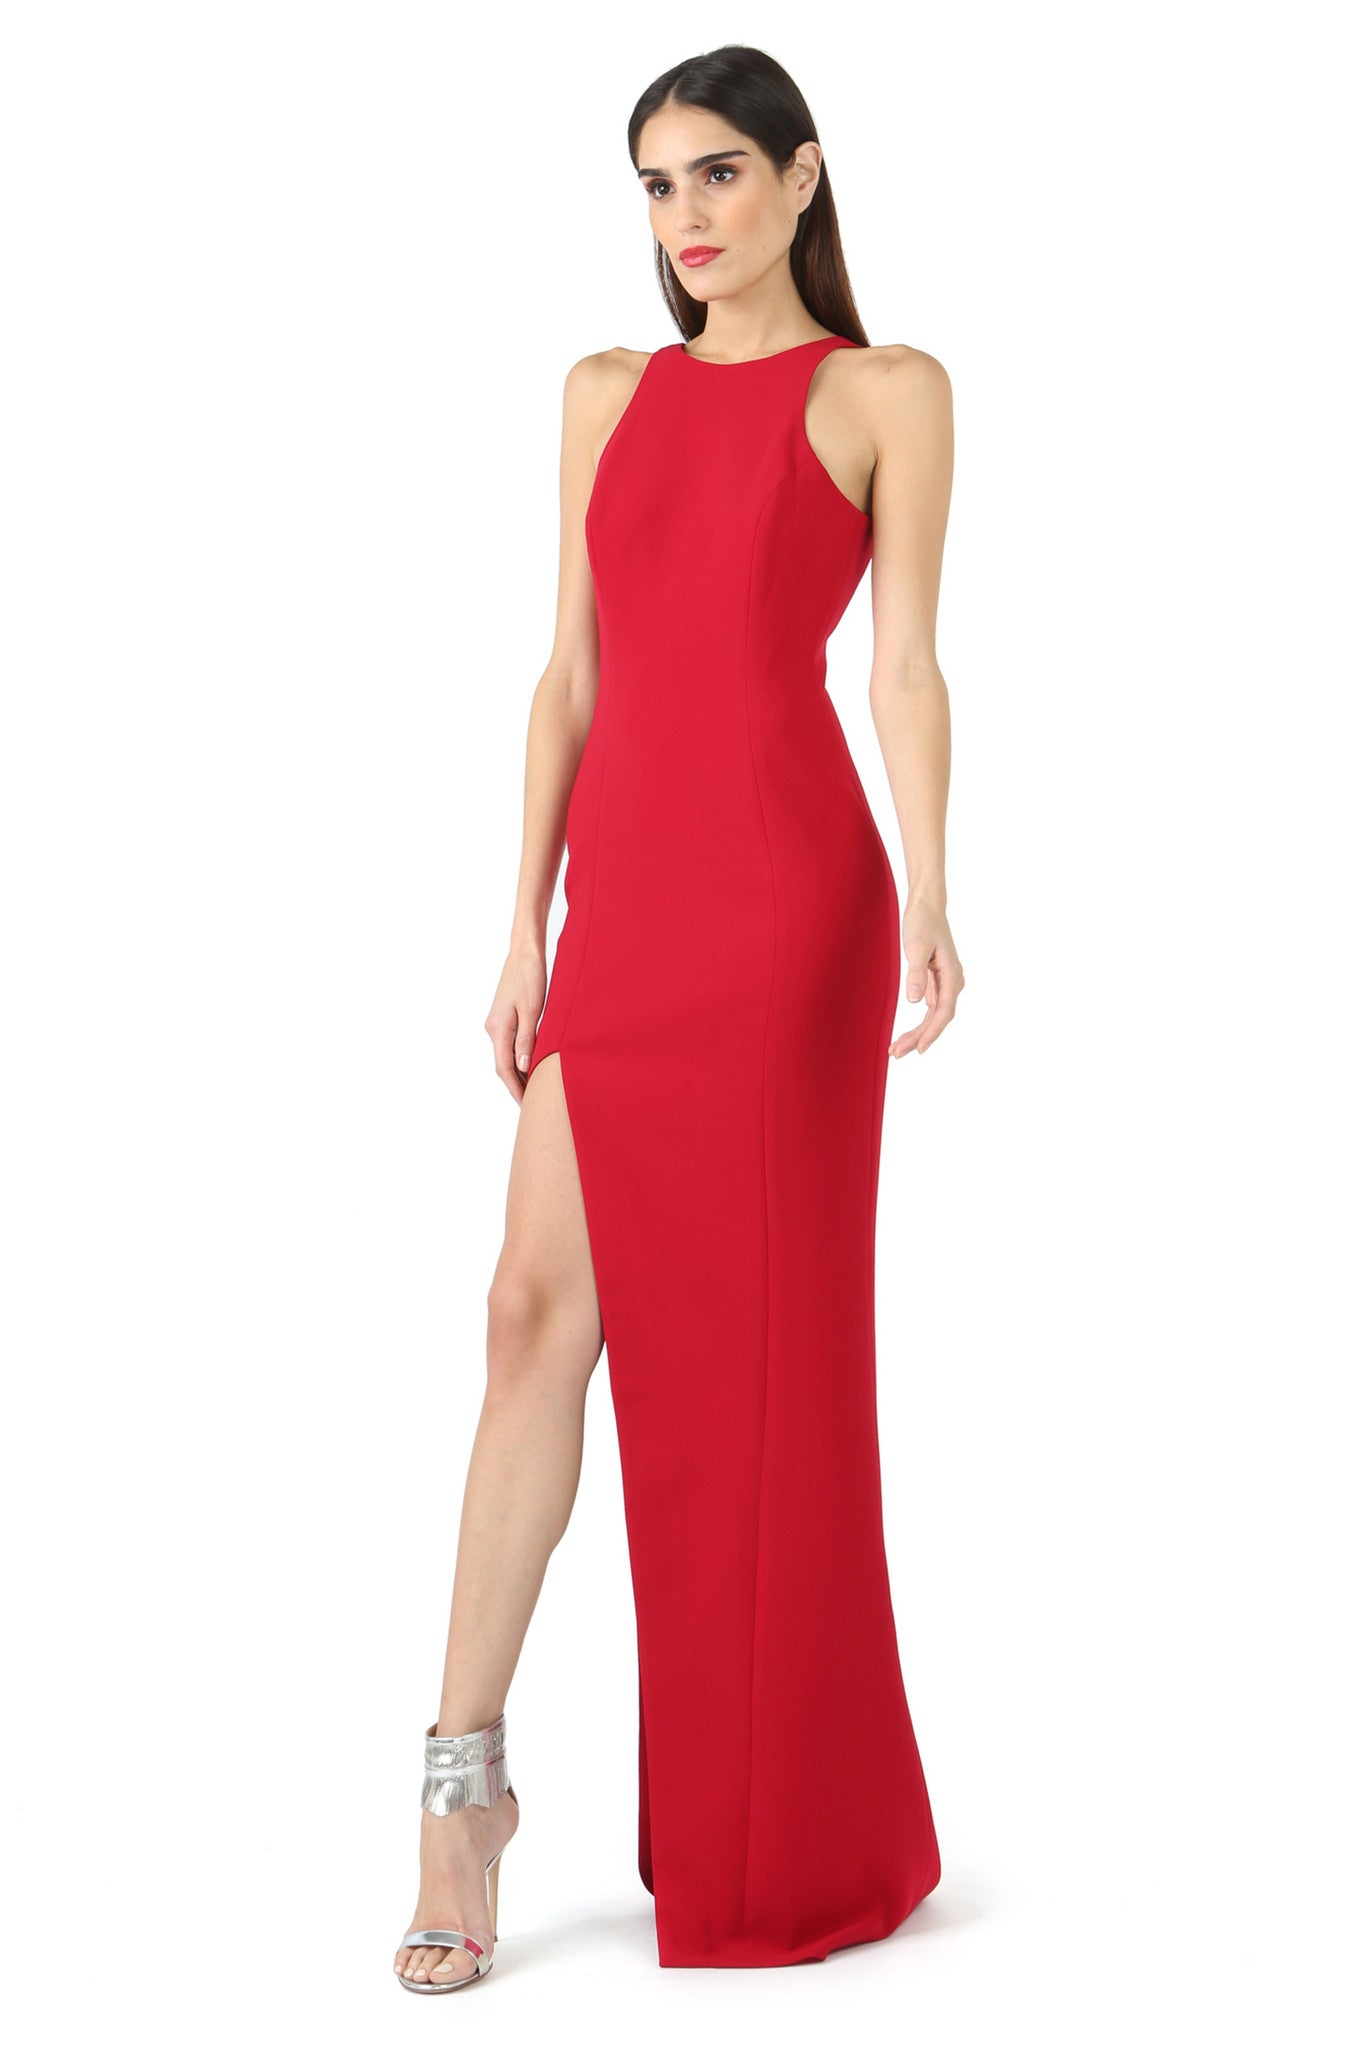 Jay Godfrey Red Asymmetrical Slit Gown - Front View